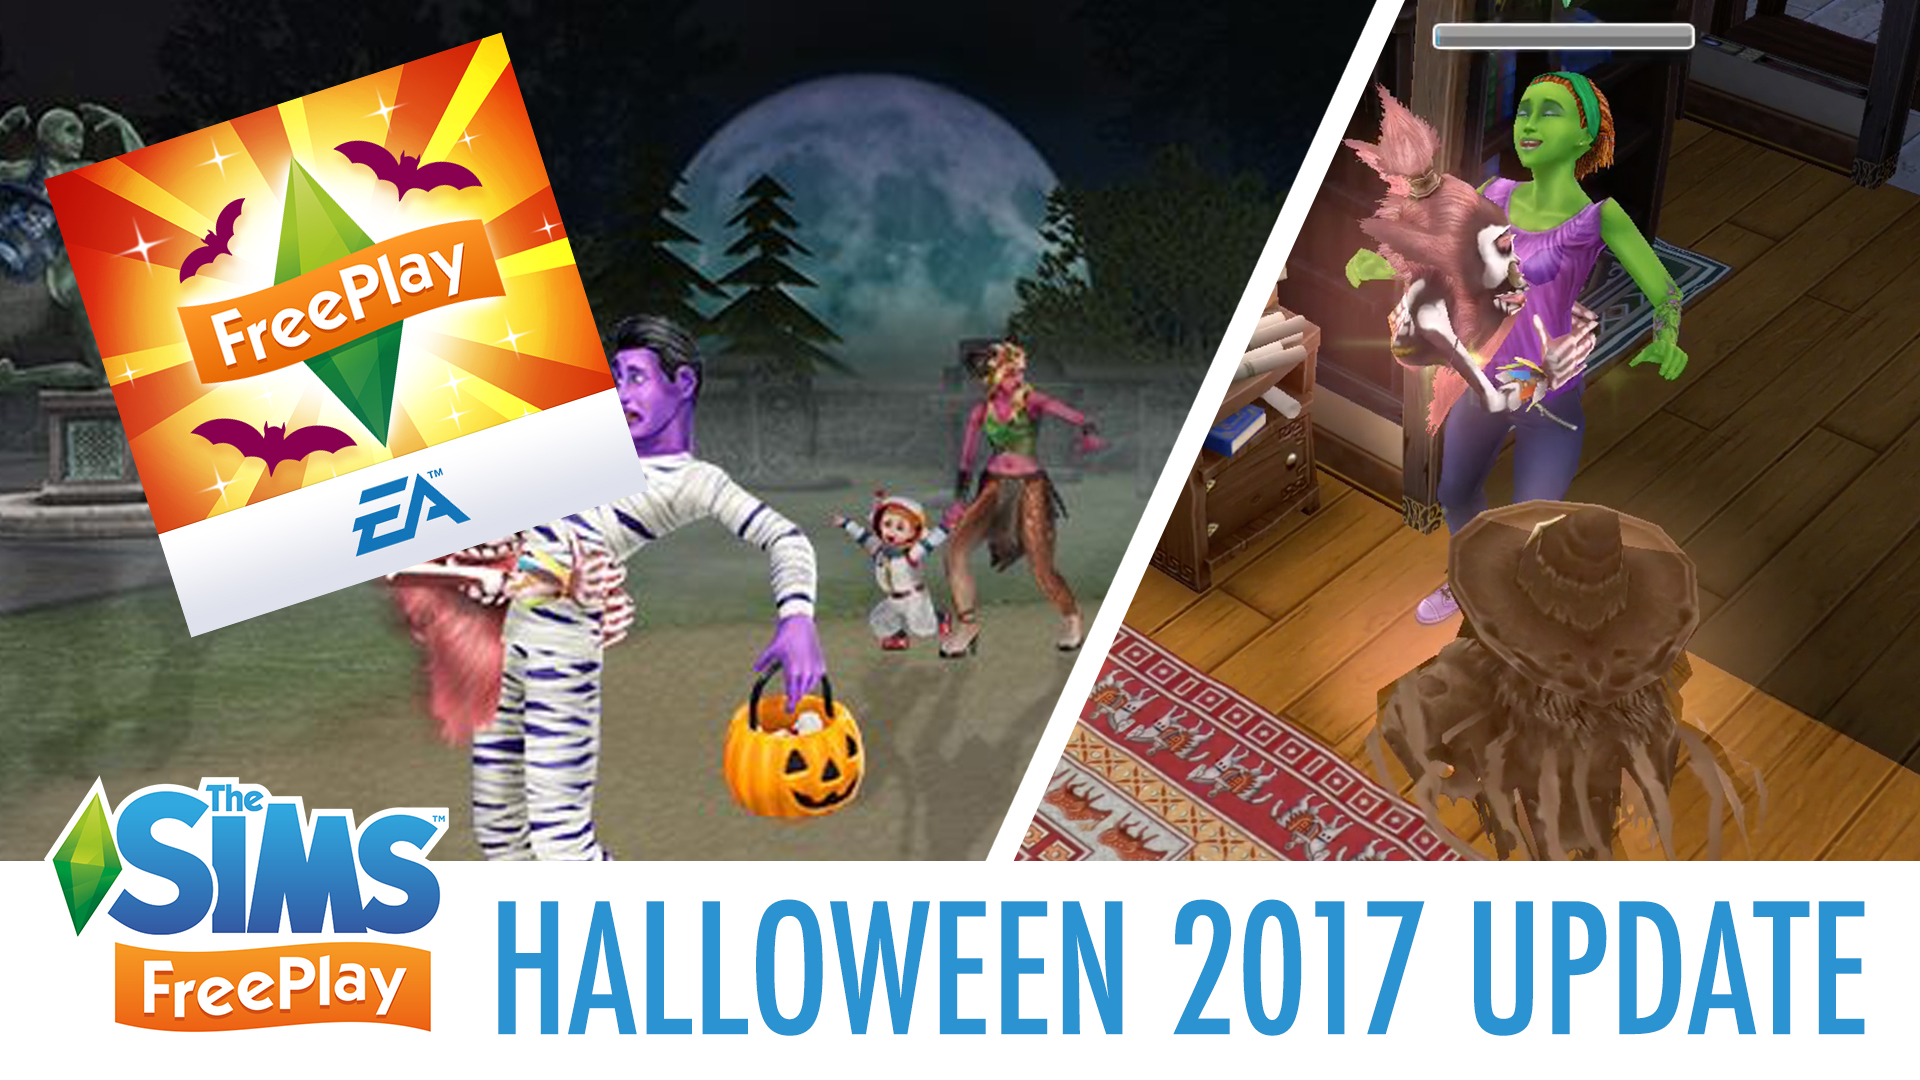 Sims Freeplay Halloween 2020 Ghost Flustered Quest Walkthrough   Sims FreePlay Halloween Update